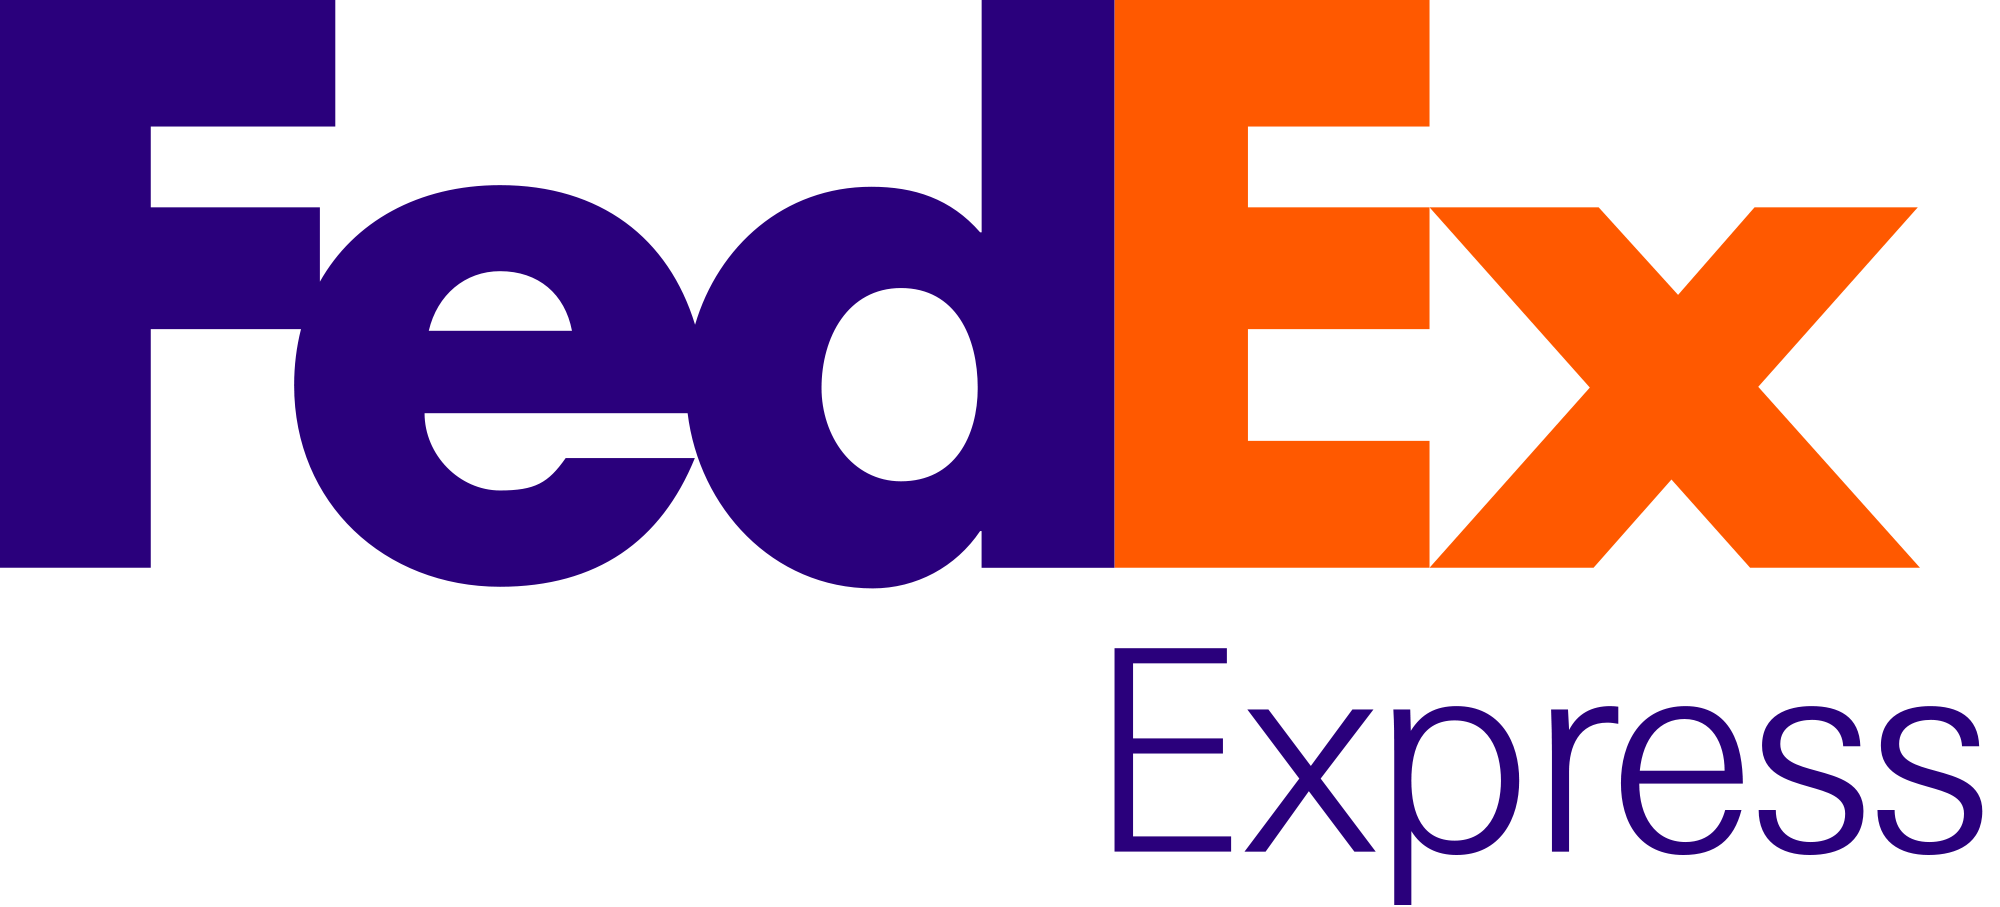 logo facts fedex